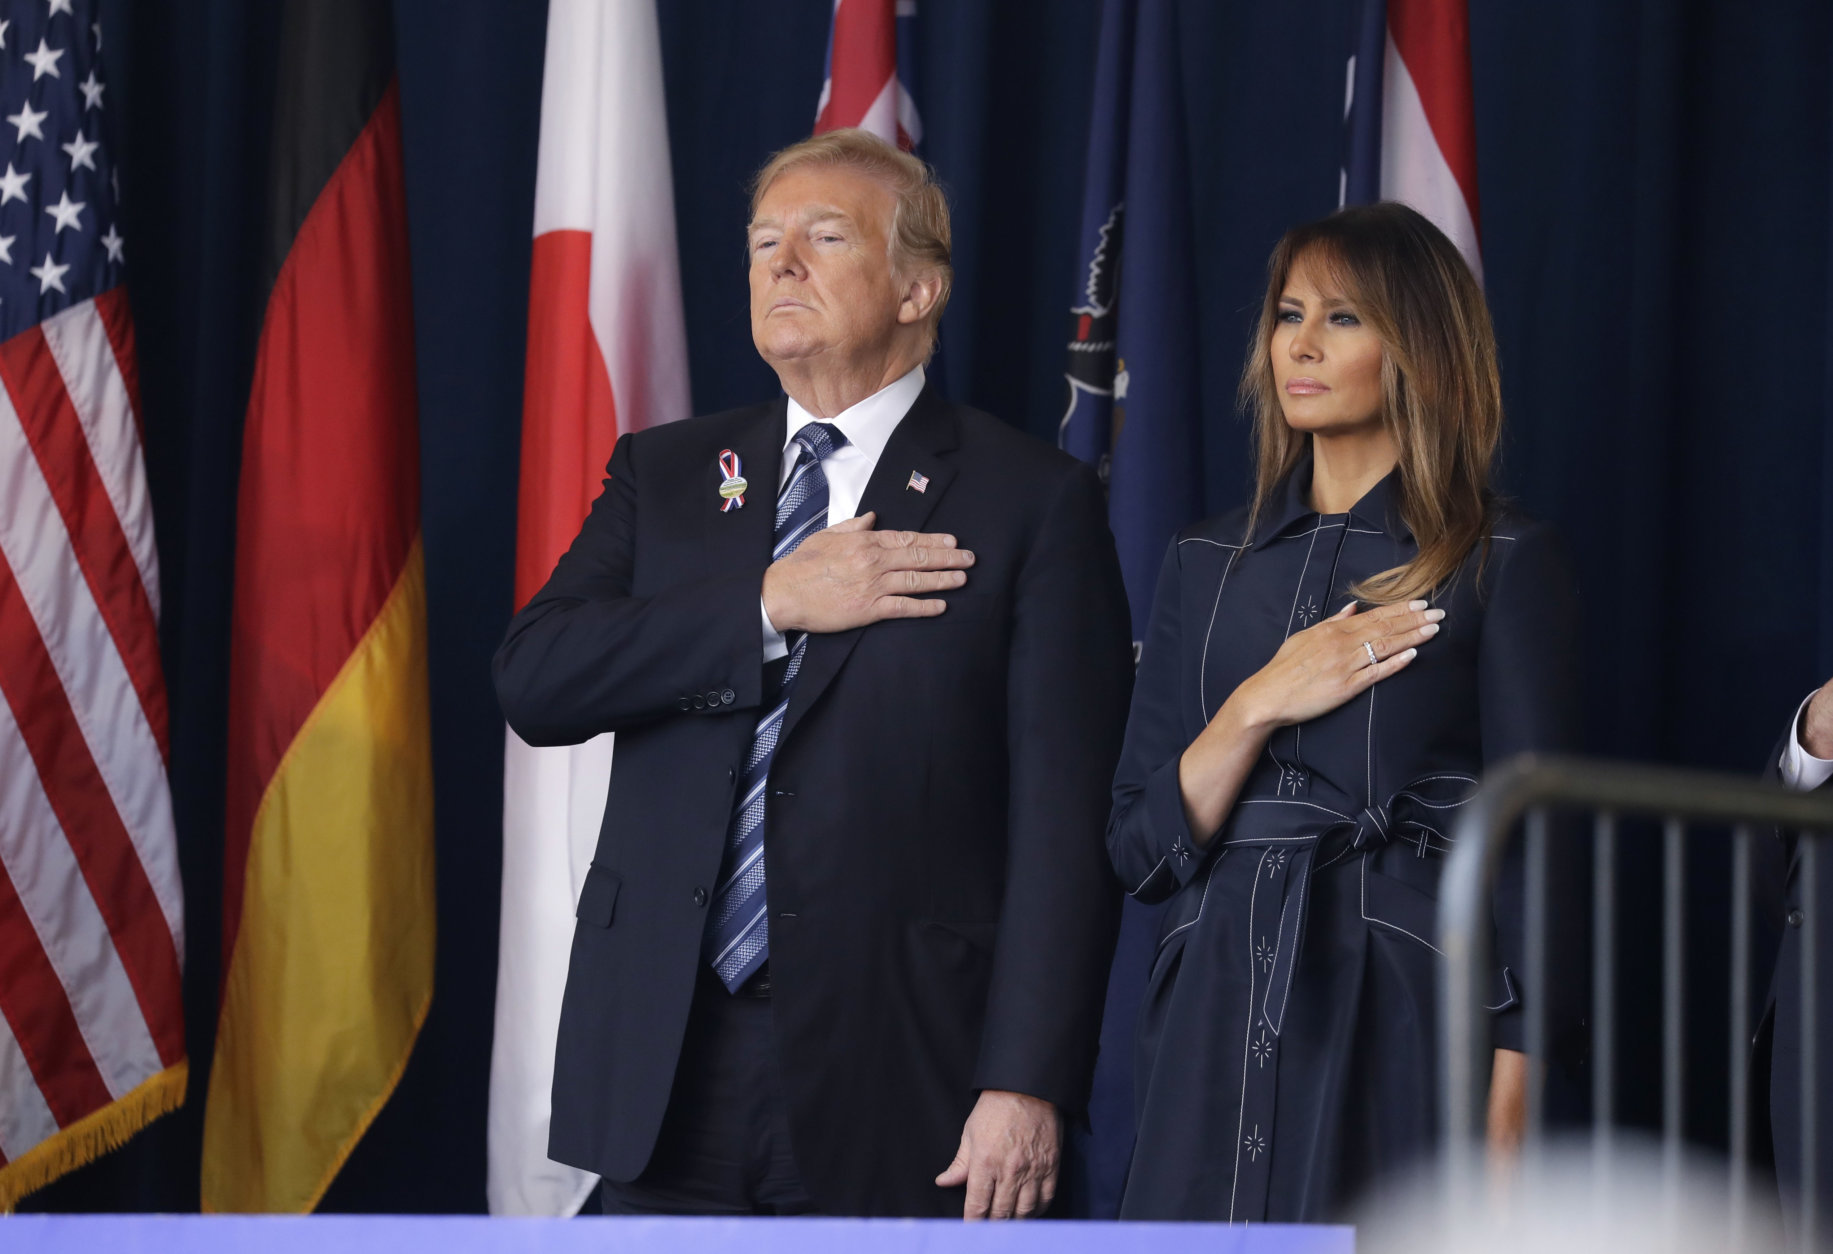 President Donald Trump and first lady Melania Trump participate in the September 11th Flight 93 Memorial Service, Tuesday, Sept. 11, 2018, in Shanksville, Pa. (AP Photo/Evan Vucci)